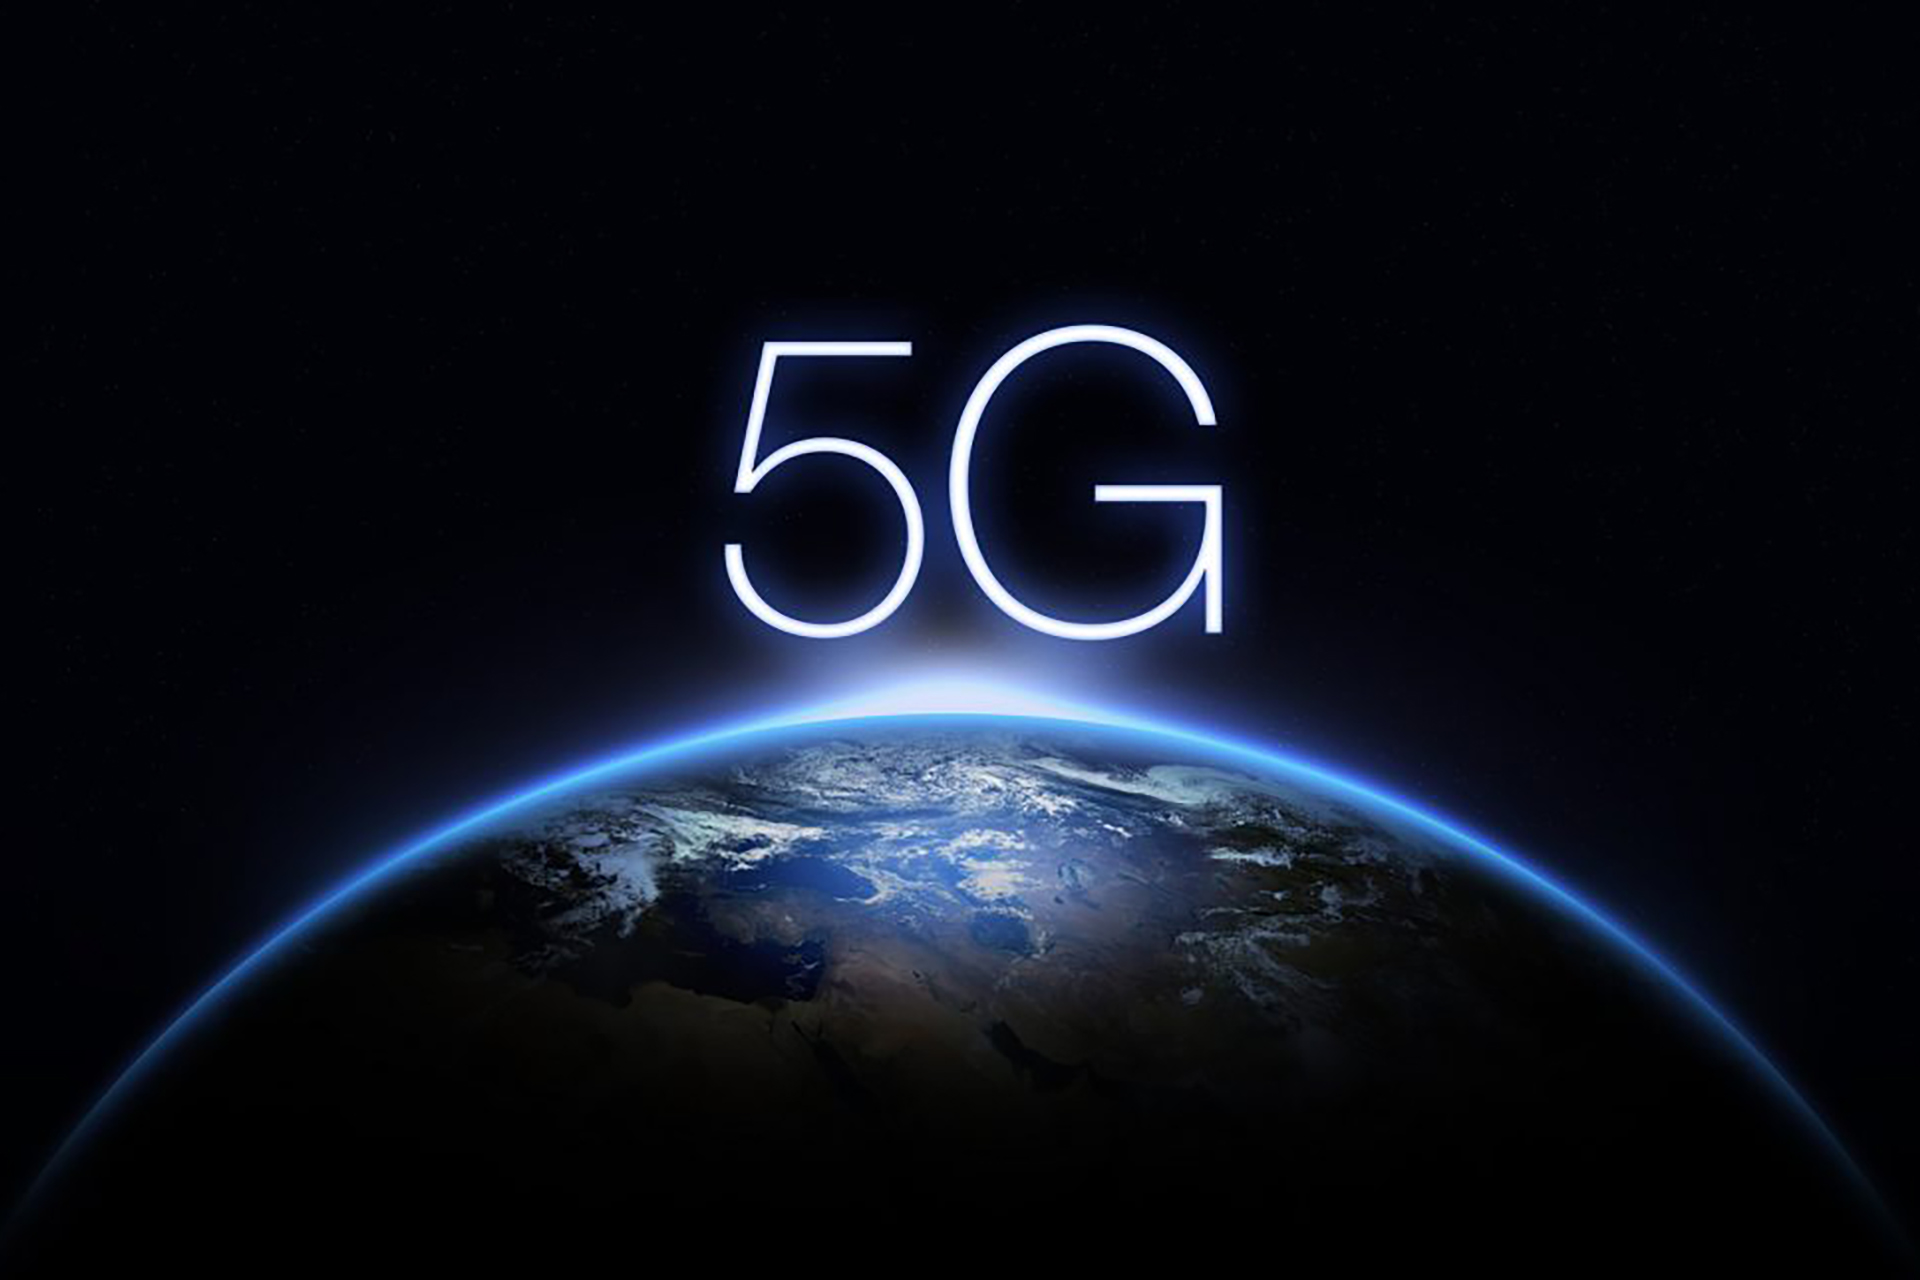 5G World Economy Society